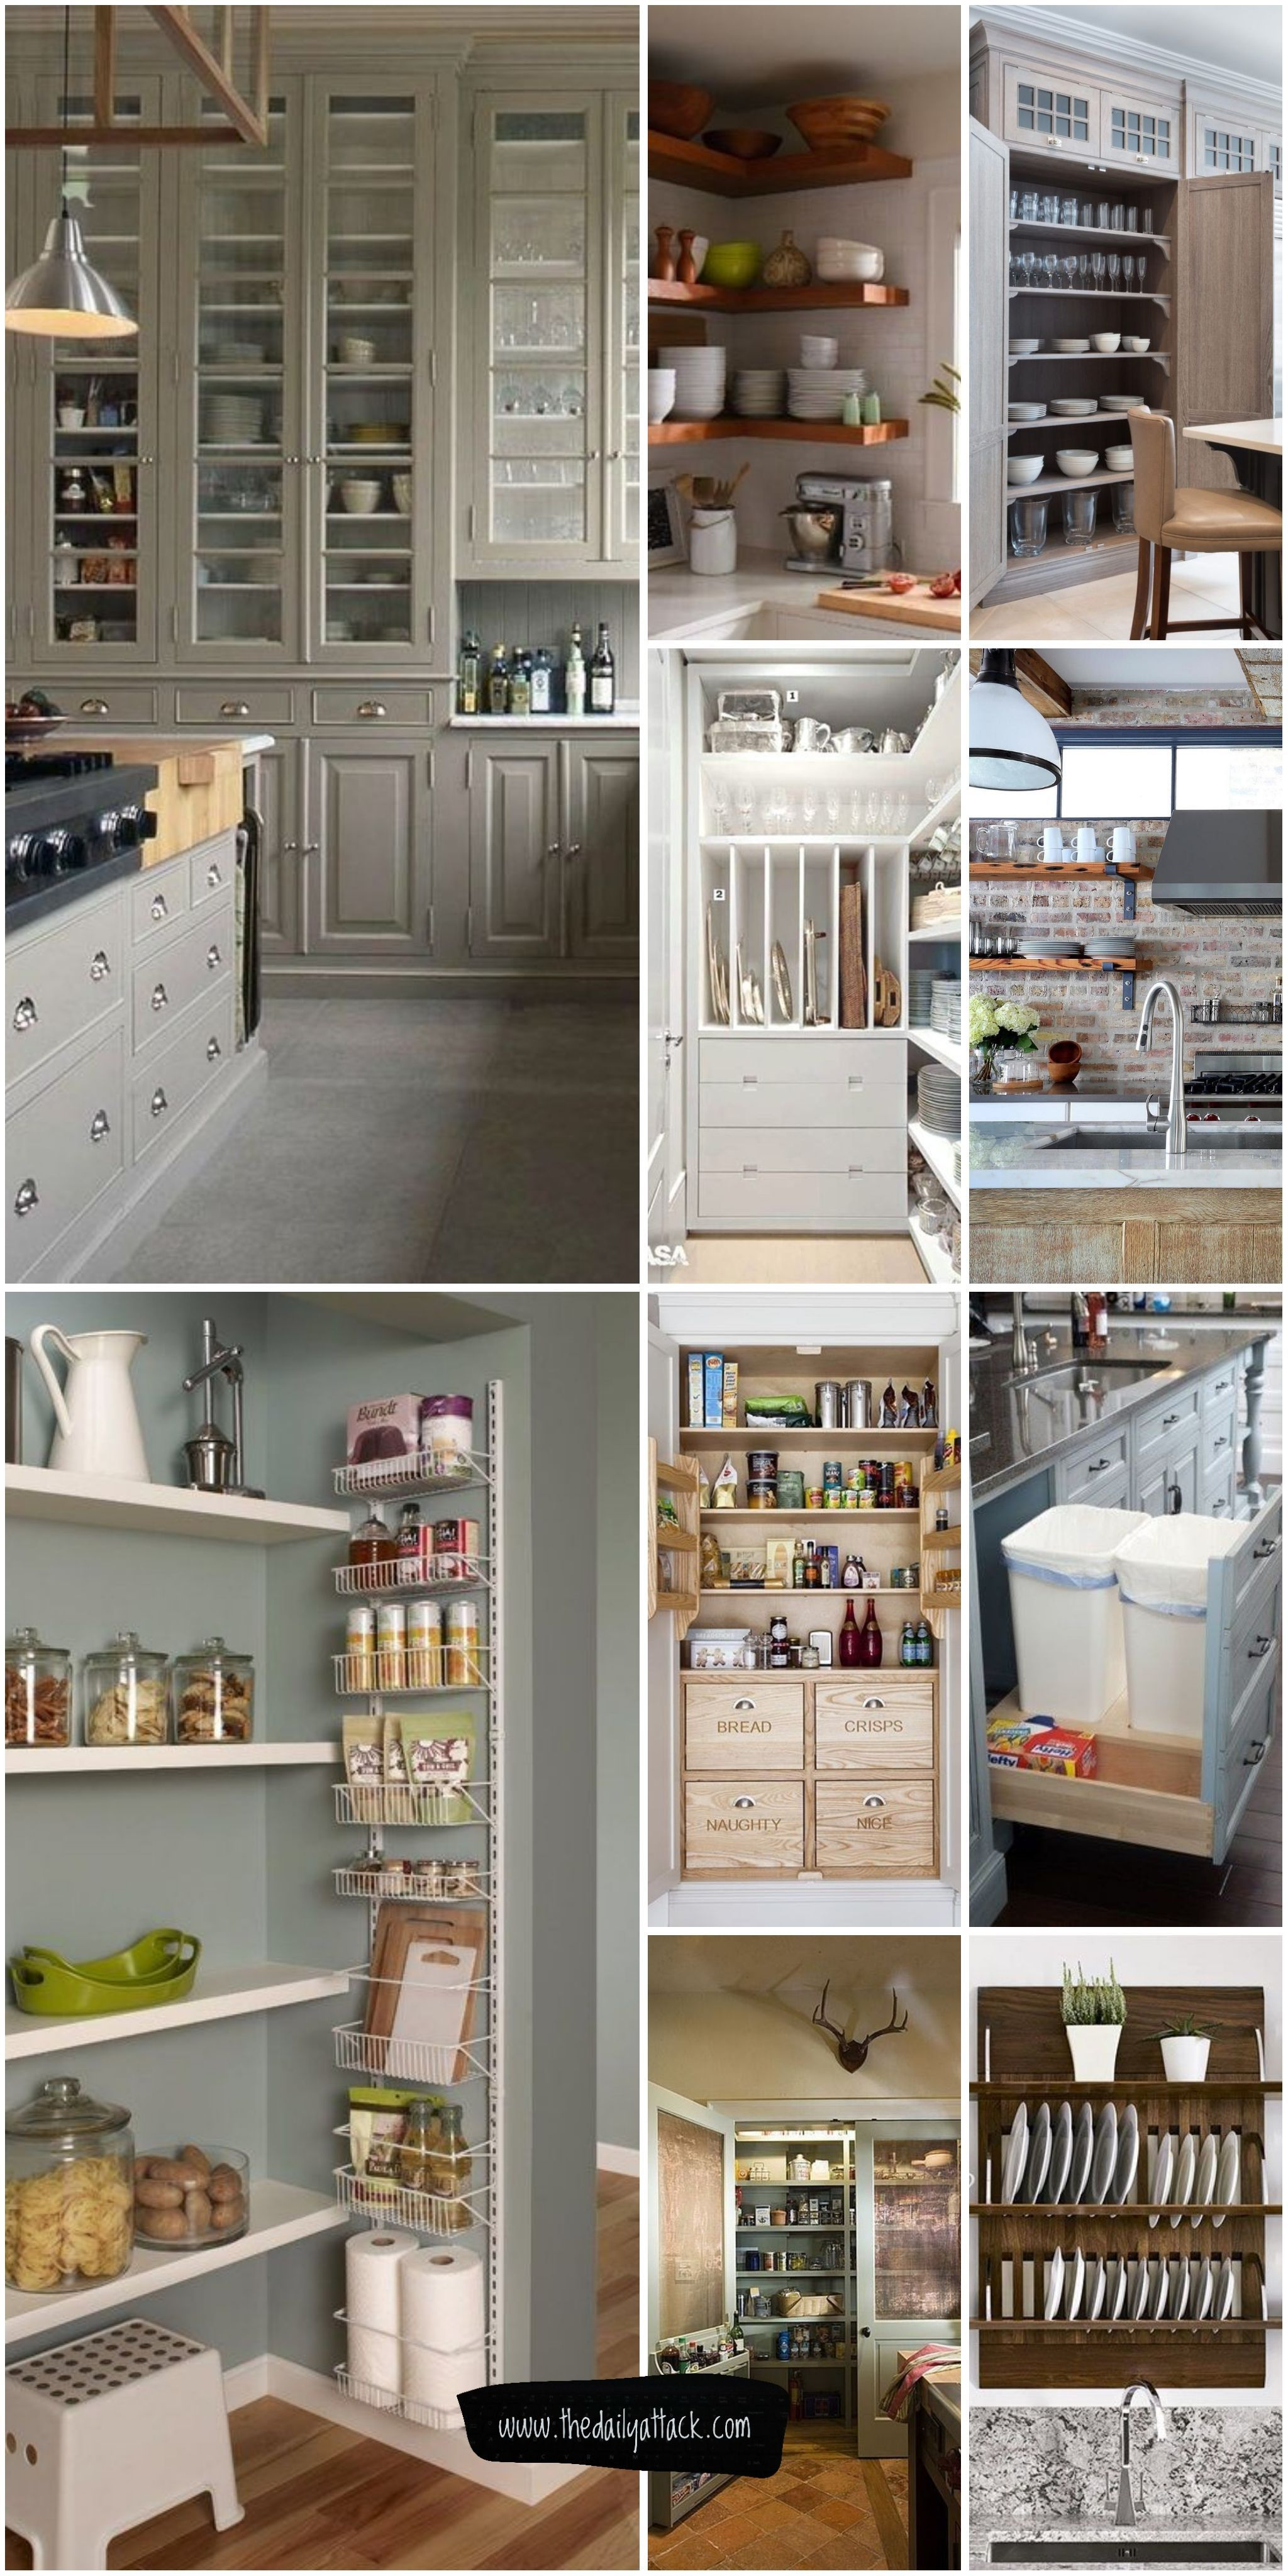 Small Kitchen Cabinet Ideas Http Lahuhome Com Small Kitchen Cabinet Ideas The Small K Small Kitchen Storage Galley Kitchen Storage Small Kitchen Cabinets